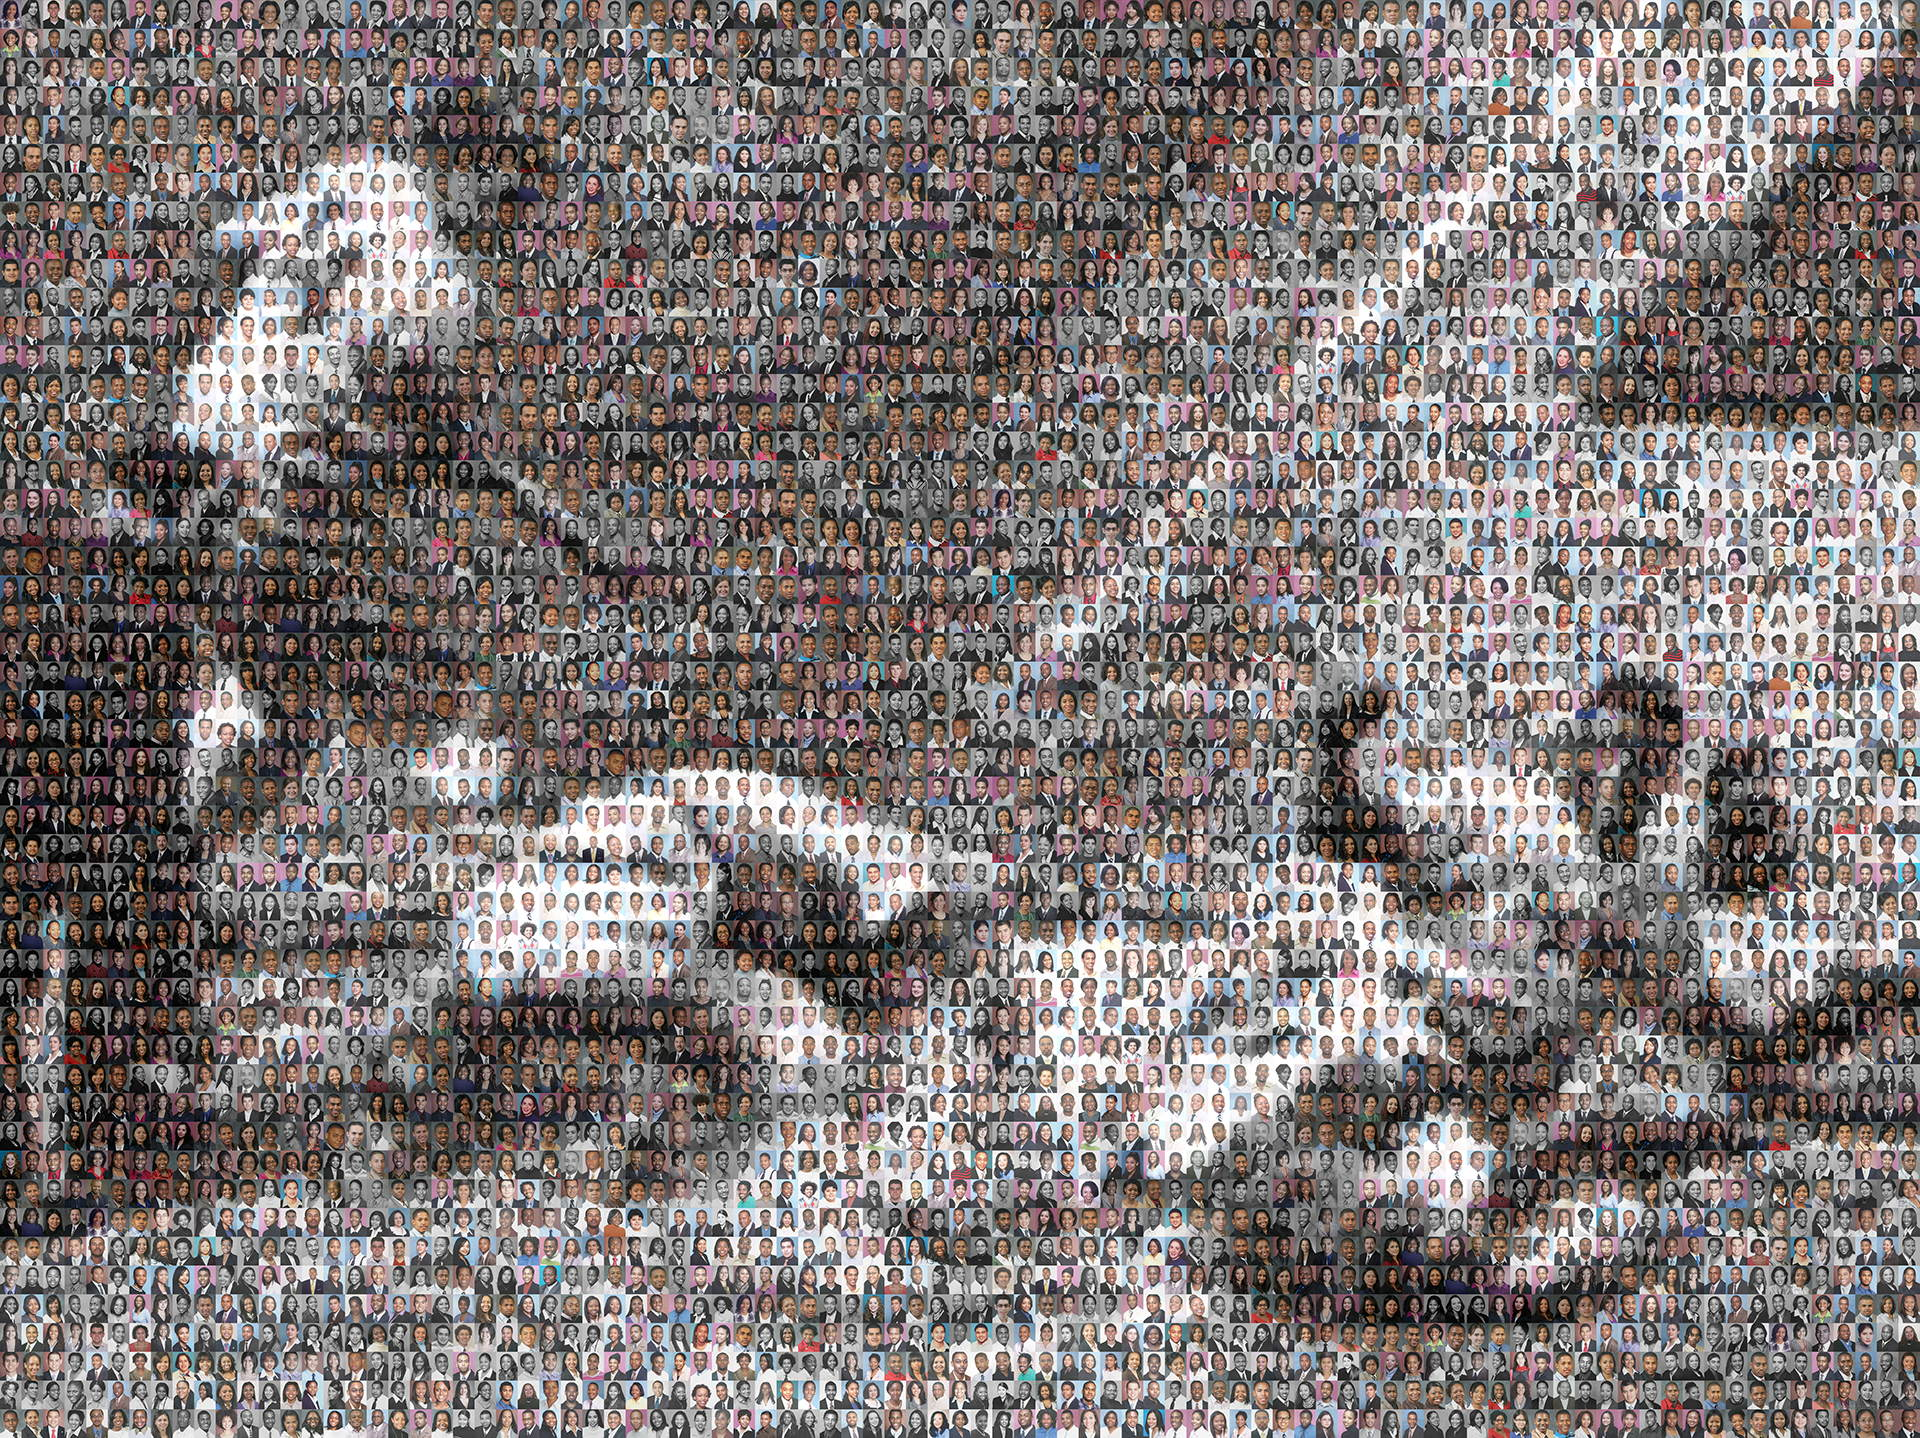 photo mosaic created using 783 student photos to commorate the famous baseball player